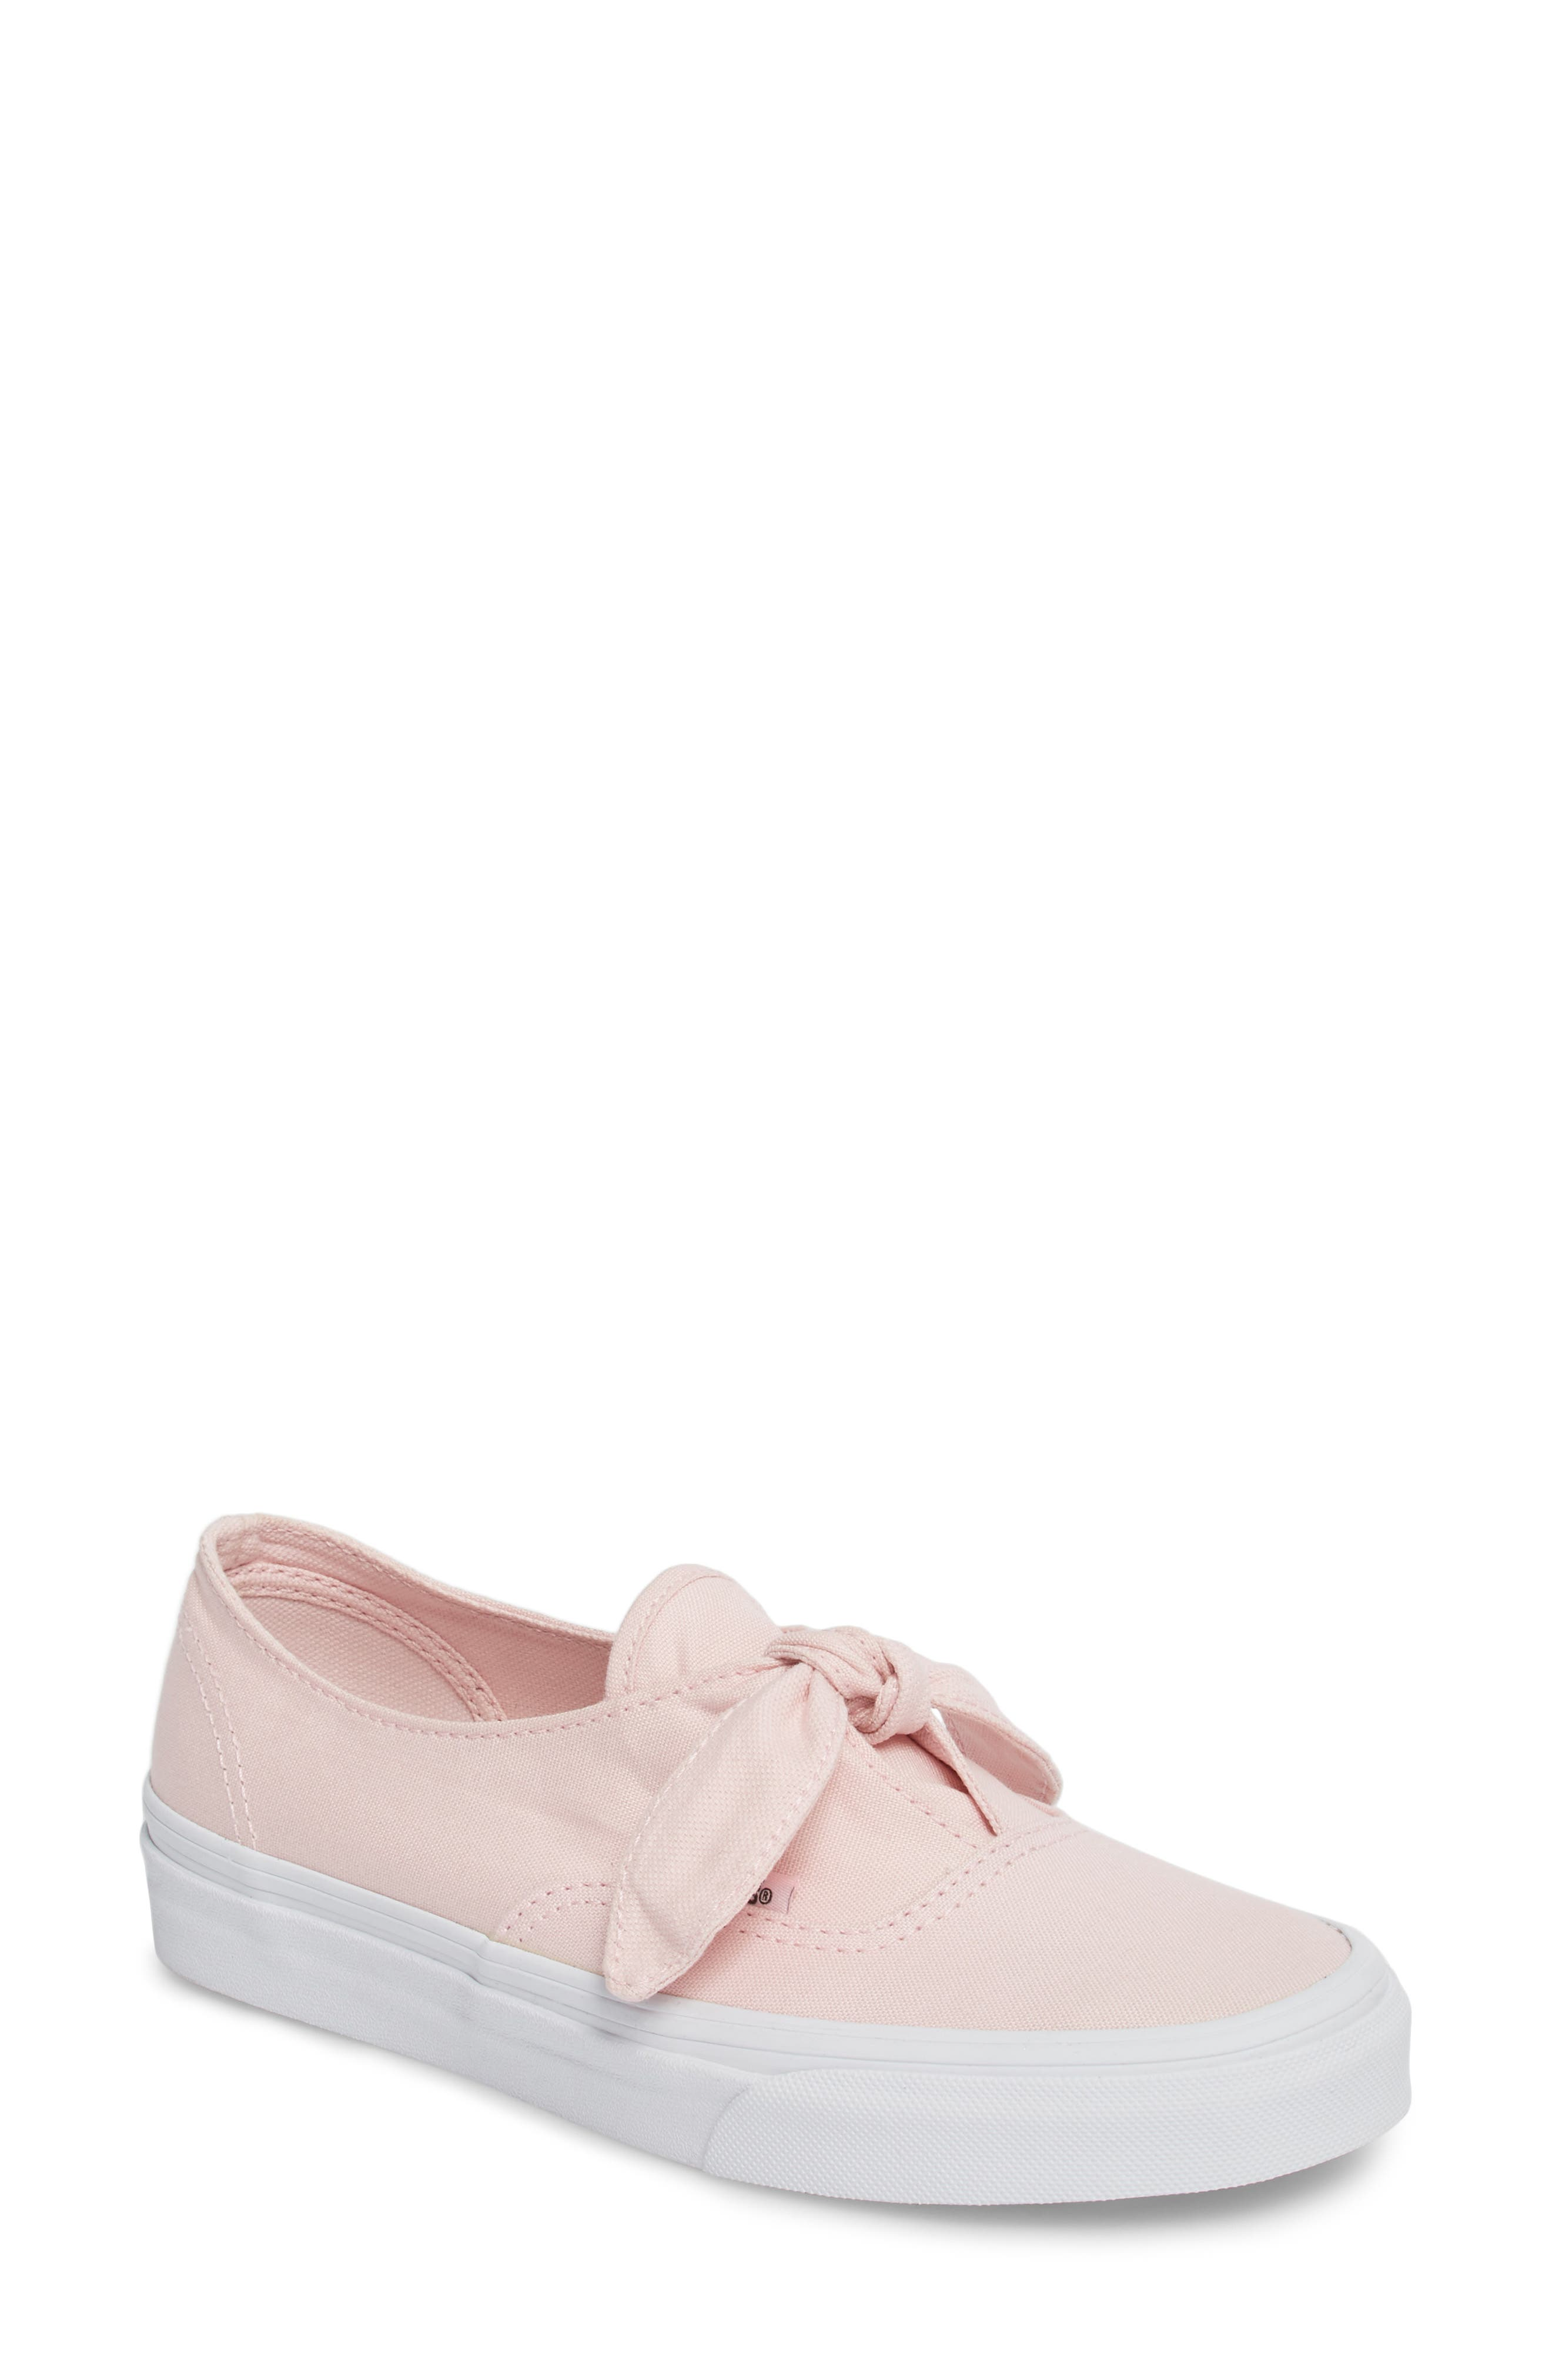 UA Authentic Knotted Slip-On Sneaker,                             Main thumbnail 1, color,                             Chalk Pink/ True White